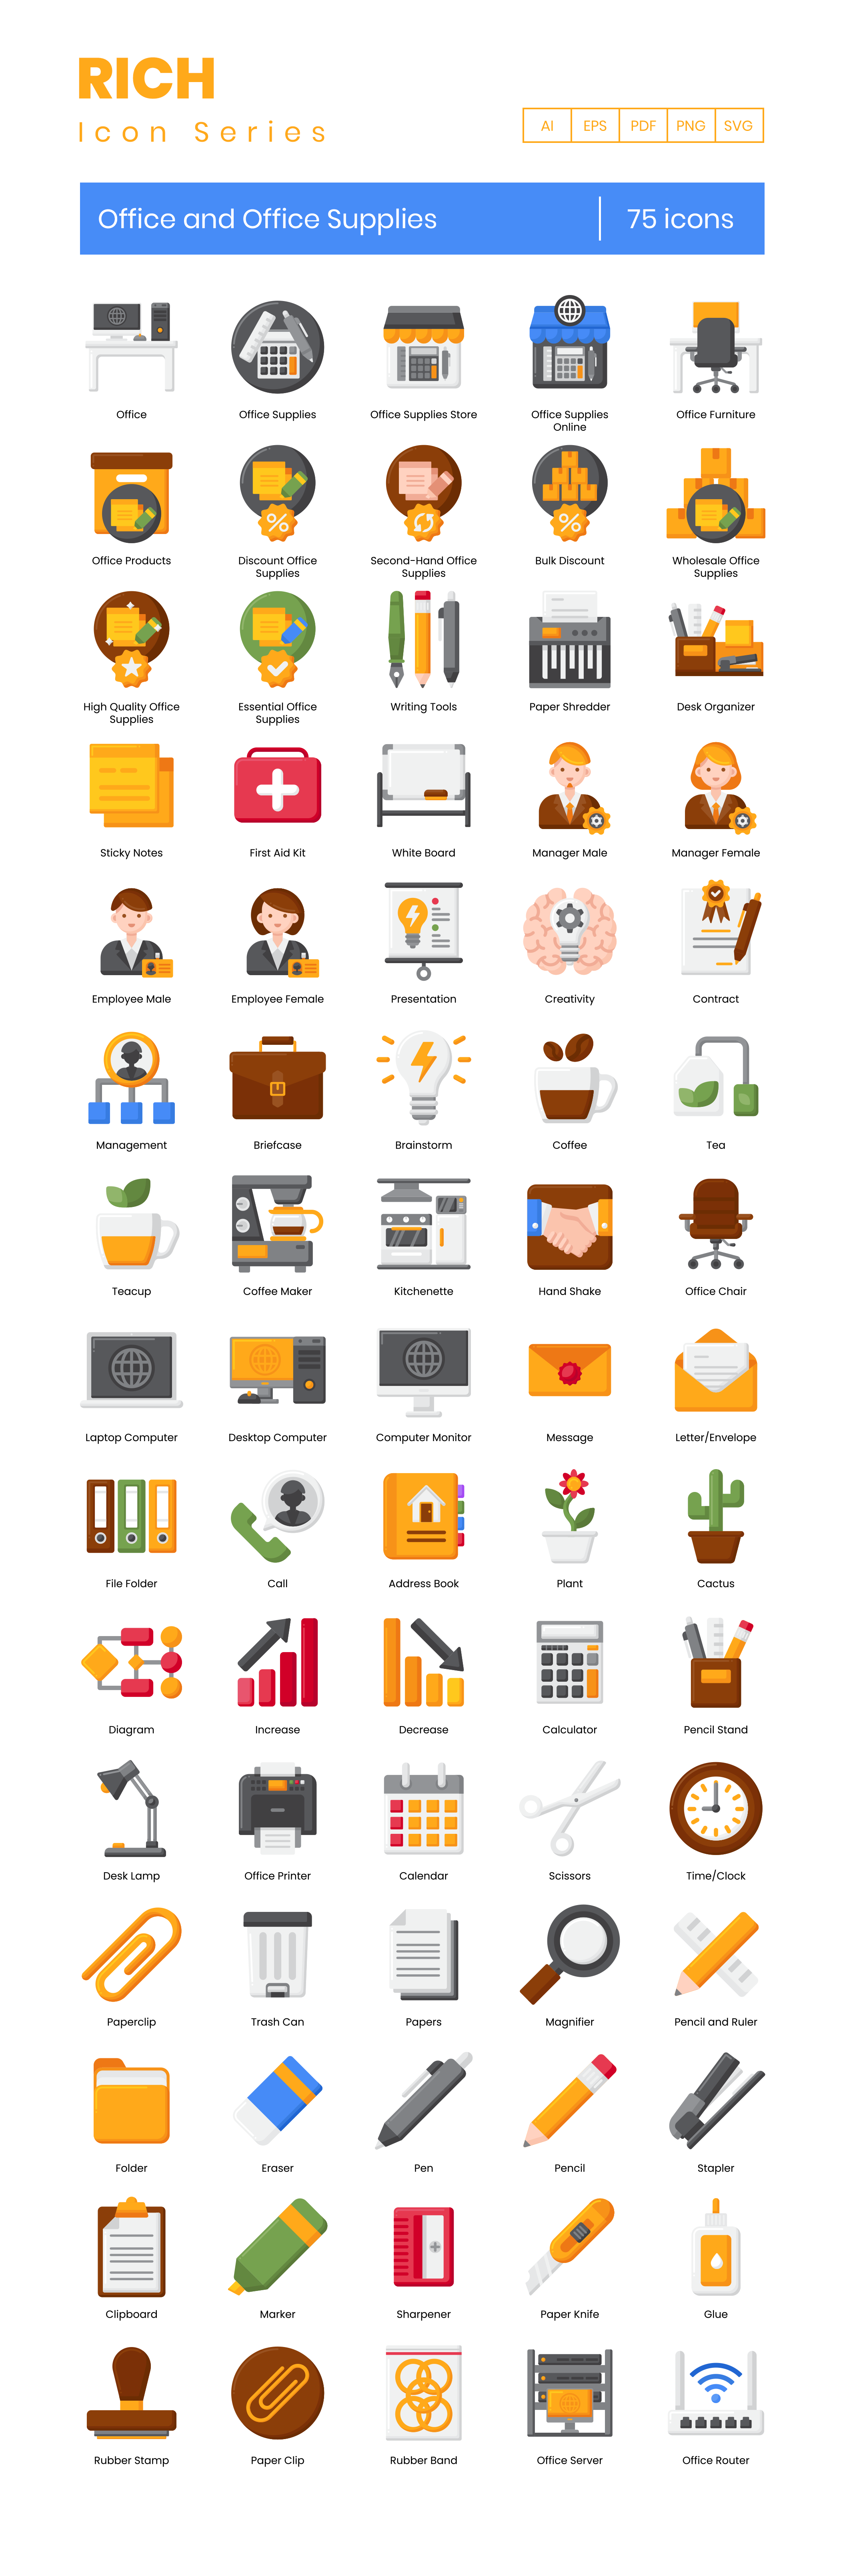 Office and Office Supplies Vector Icons Preview Image